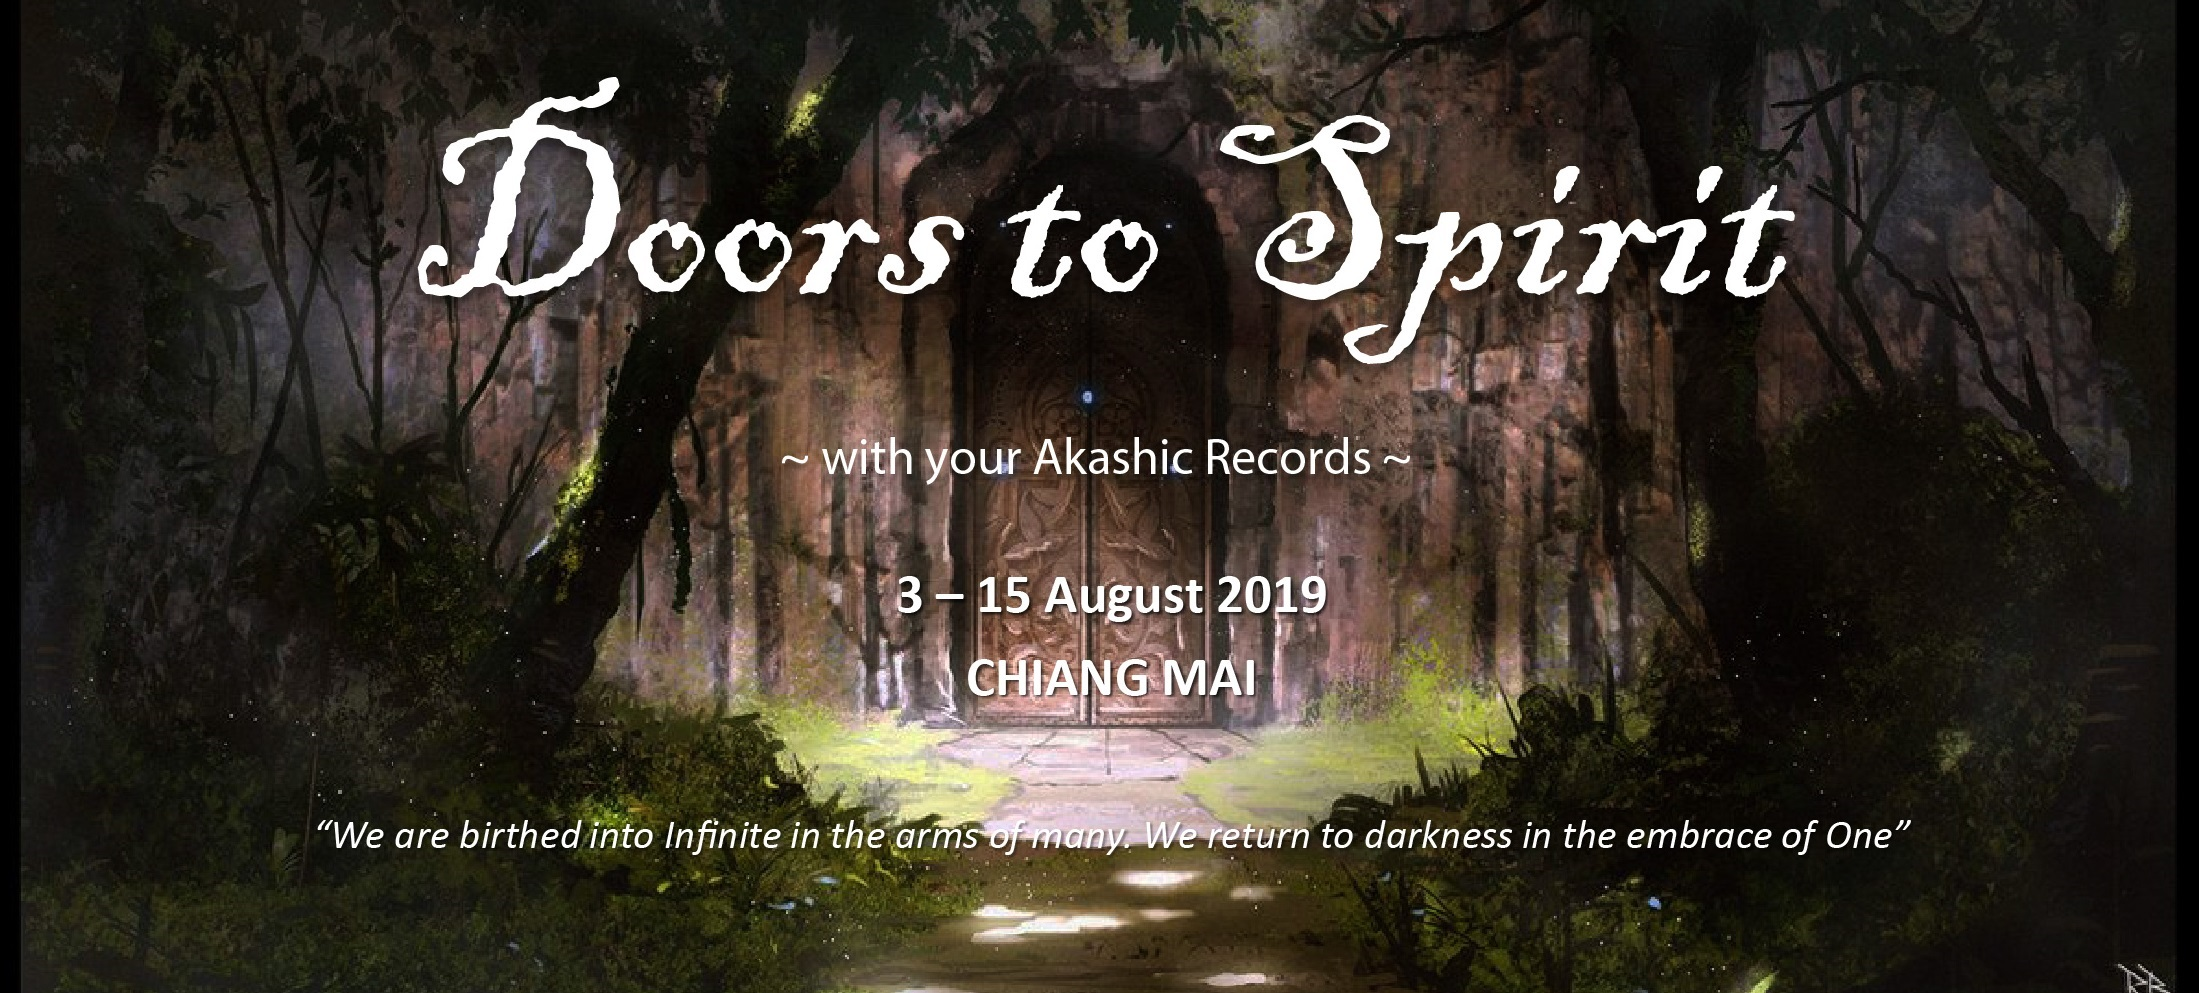 Join Calista Goh in Chiang Mai Thailand for an Akashic Records Retreat